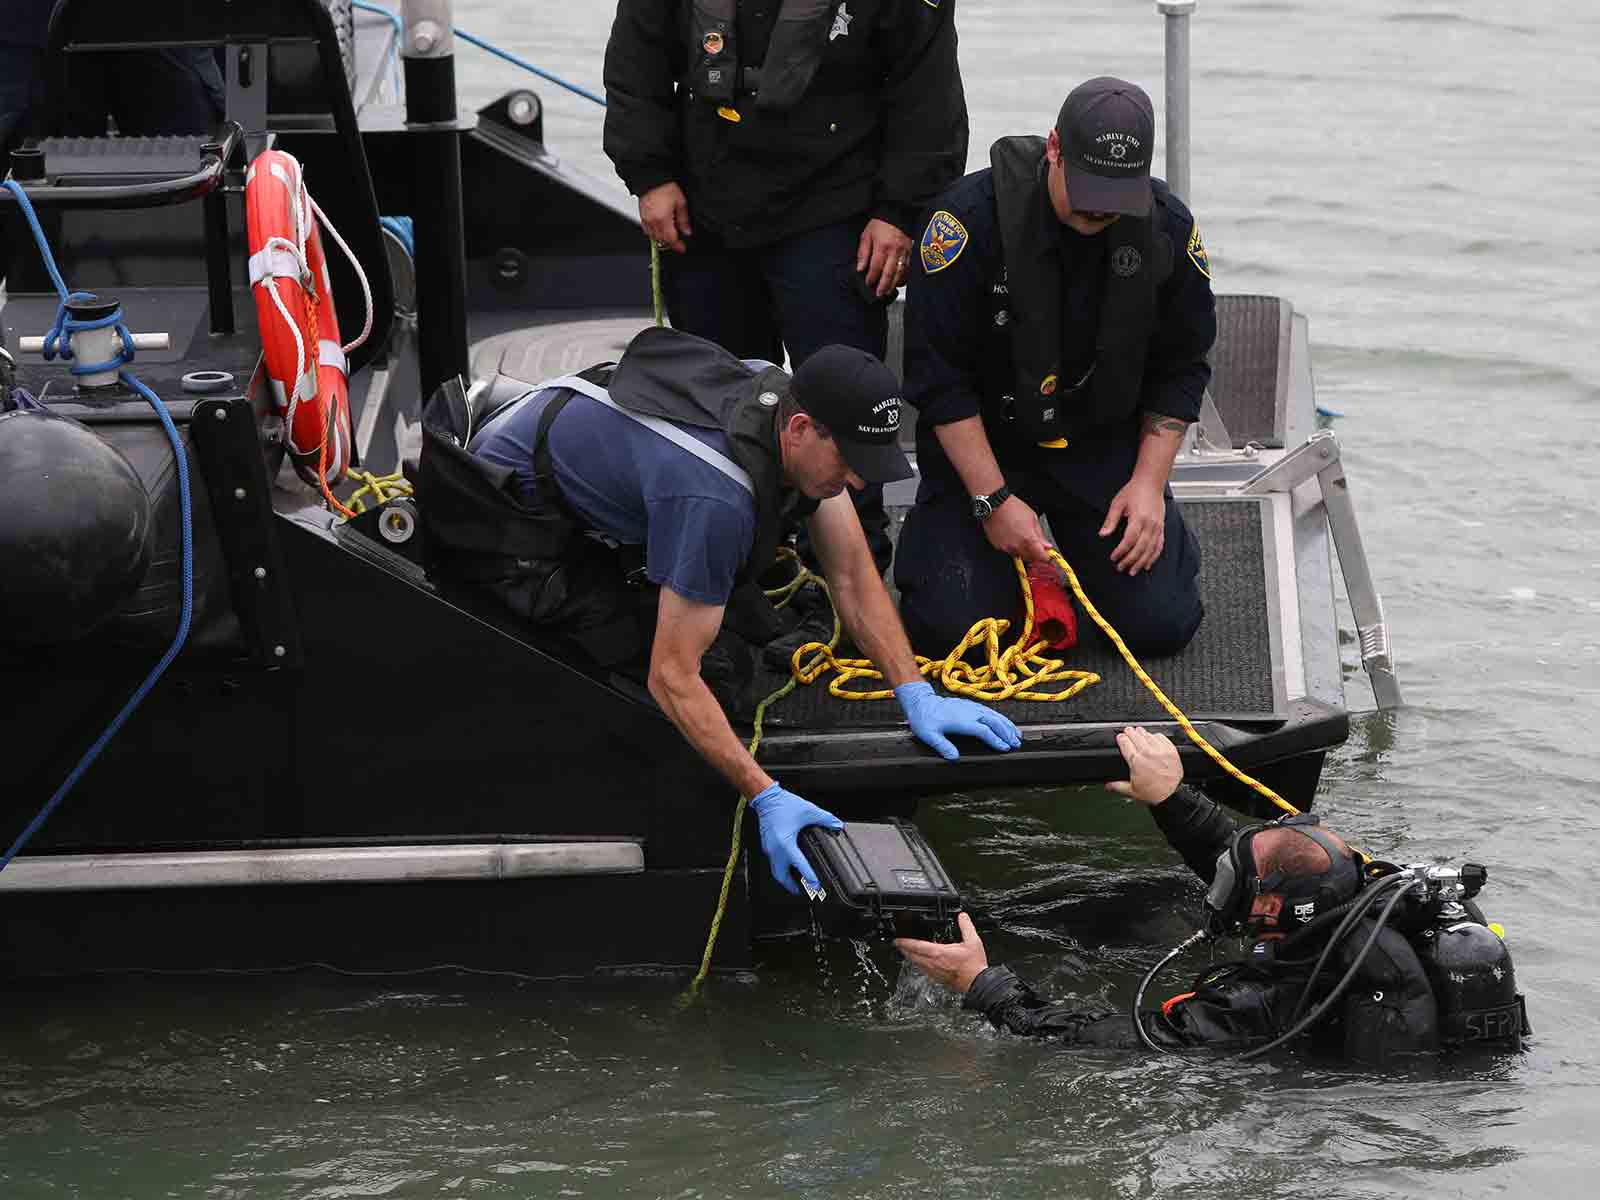 San Francisco police divers search the waters south of Pier 14 and retrieve an object they placed into a plastic box on July 2, 2015, one day after the fatal shooting of Kate Steinle. (Mike Koozmin/2015 S.F. Examiner)